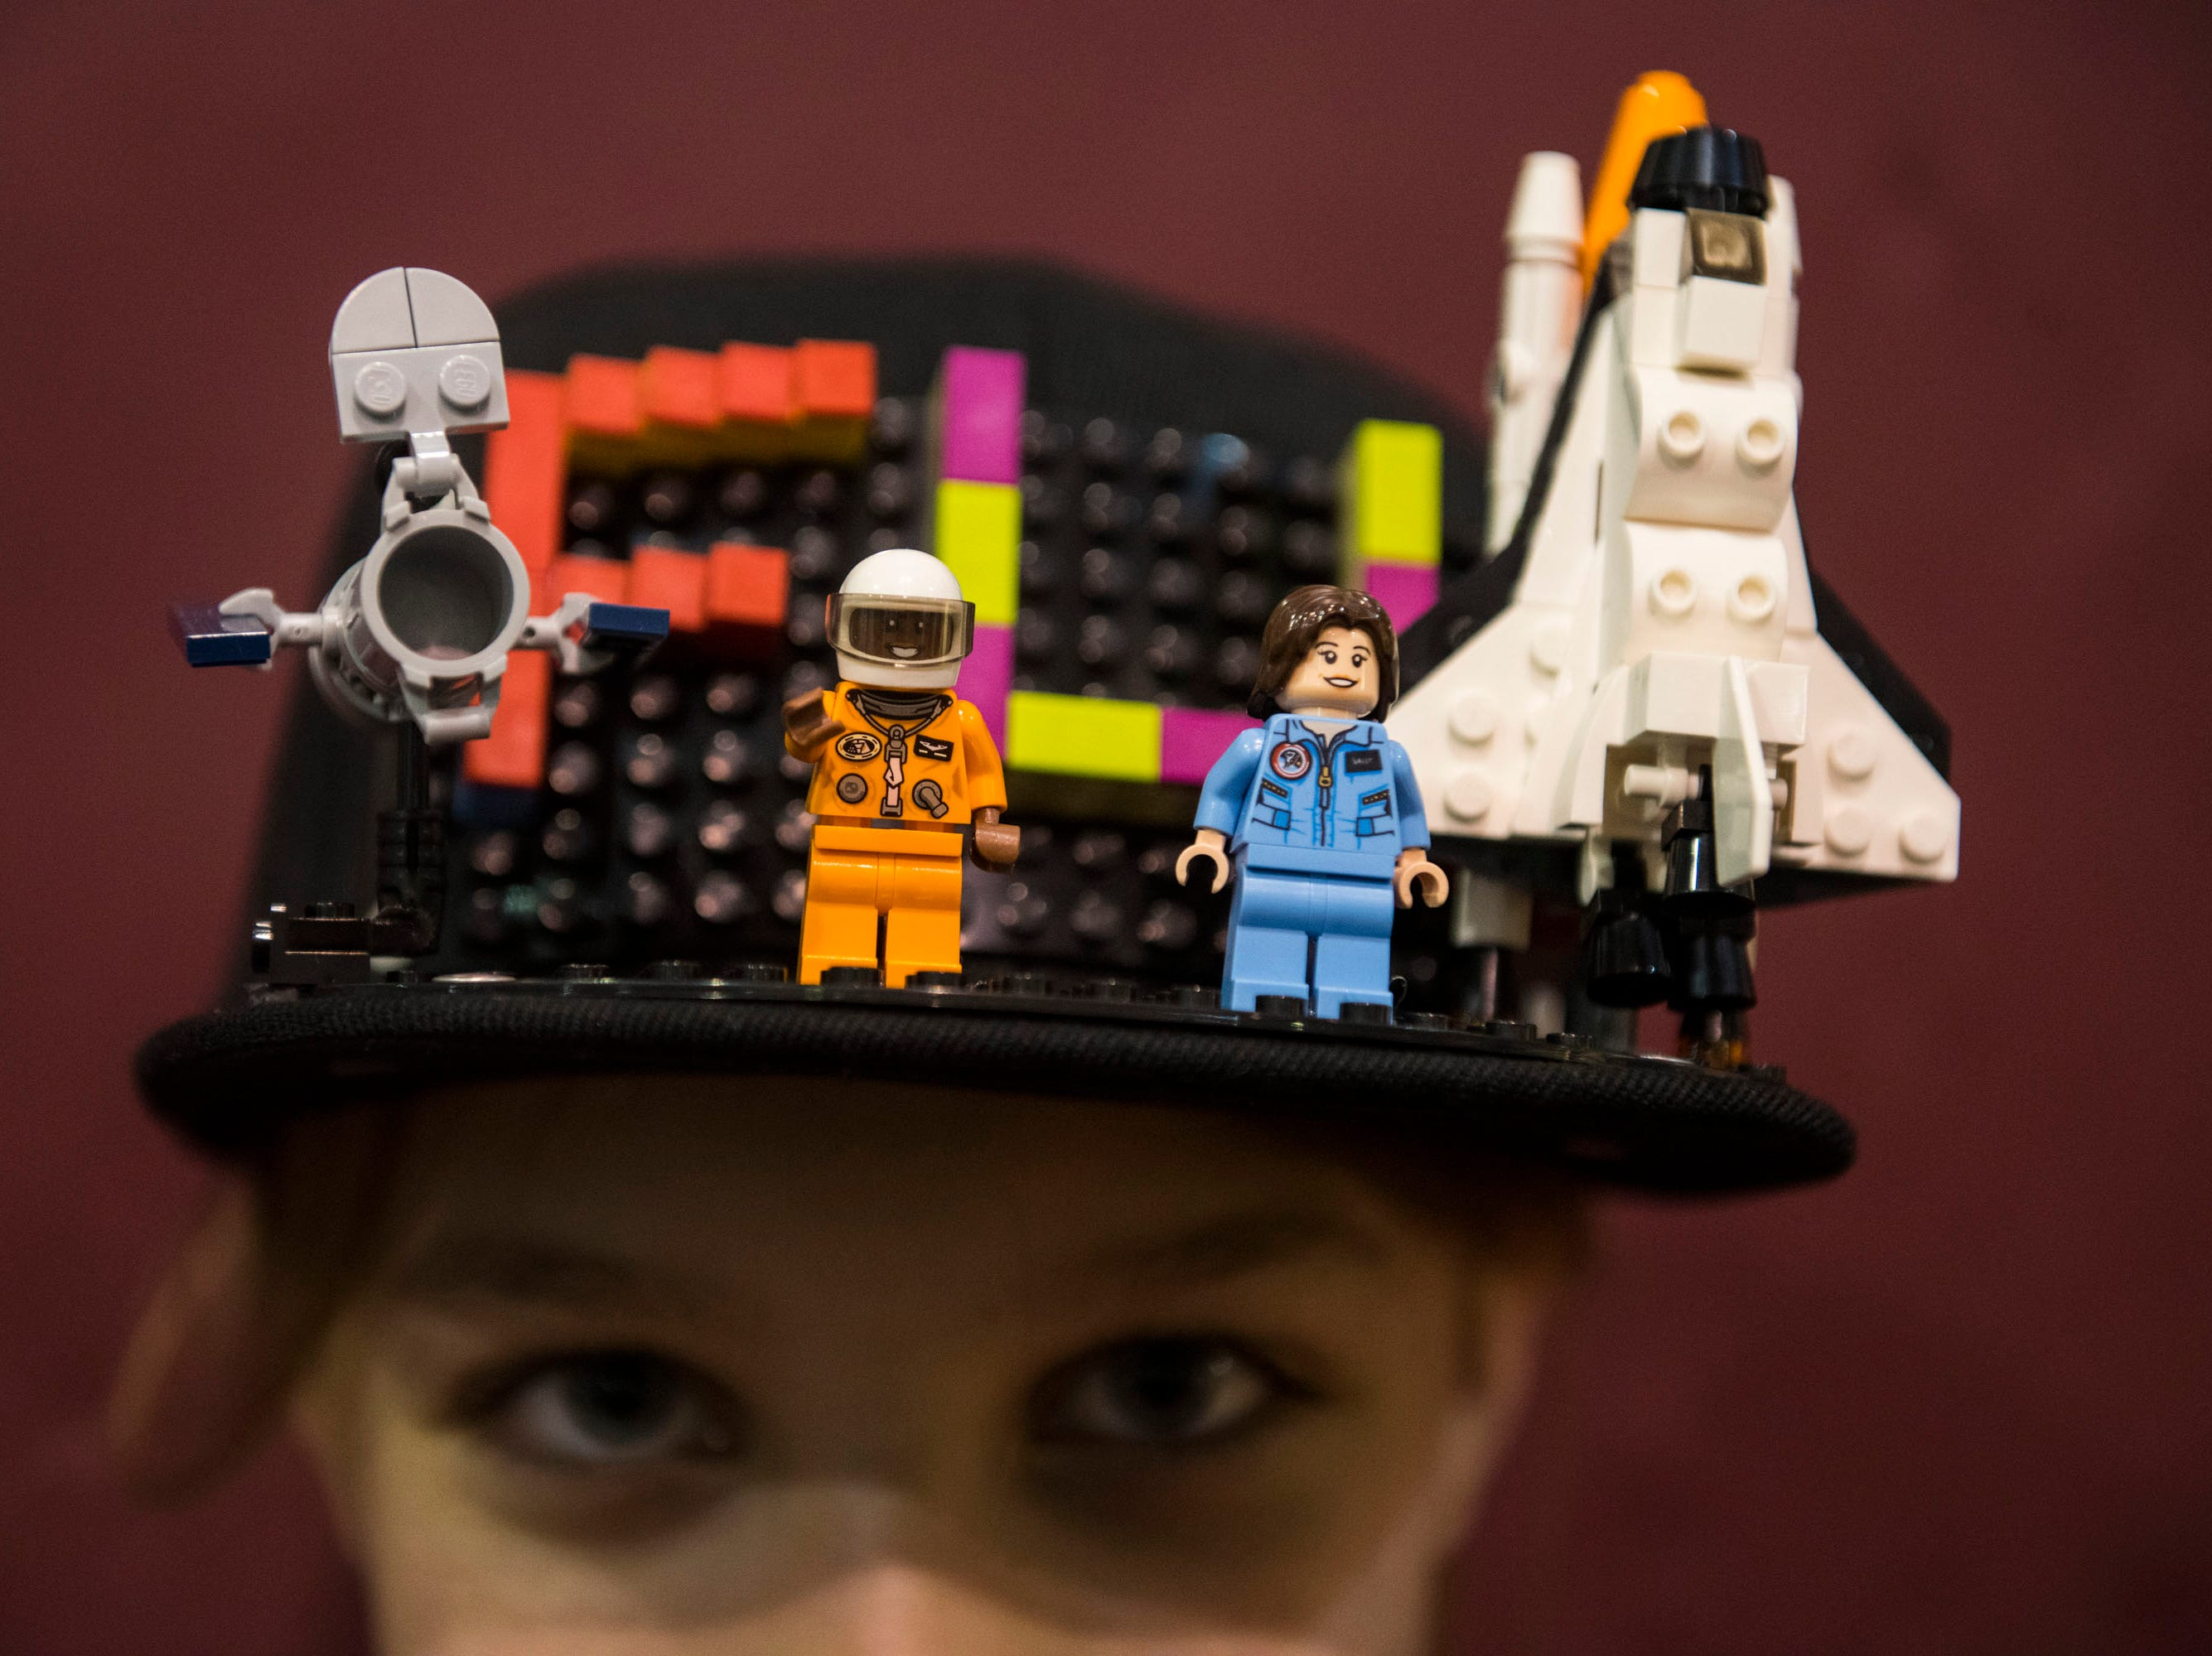 Natalie Palus, 11, of Shelby Township, a member of the Tuxedo Purritos robotics team, sports a hat embellished with Legos.